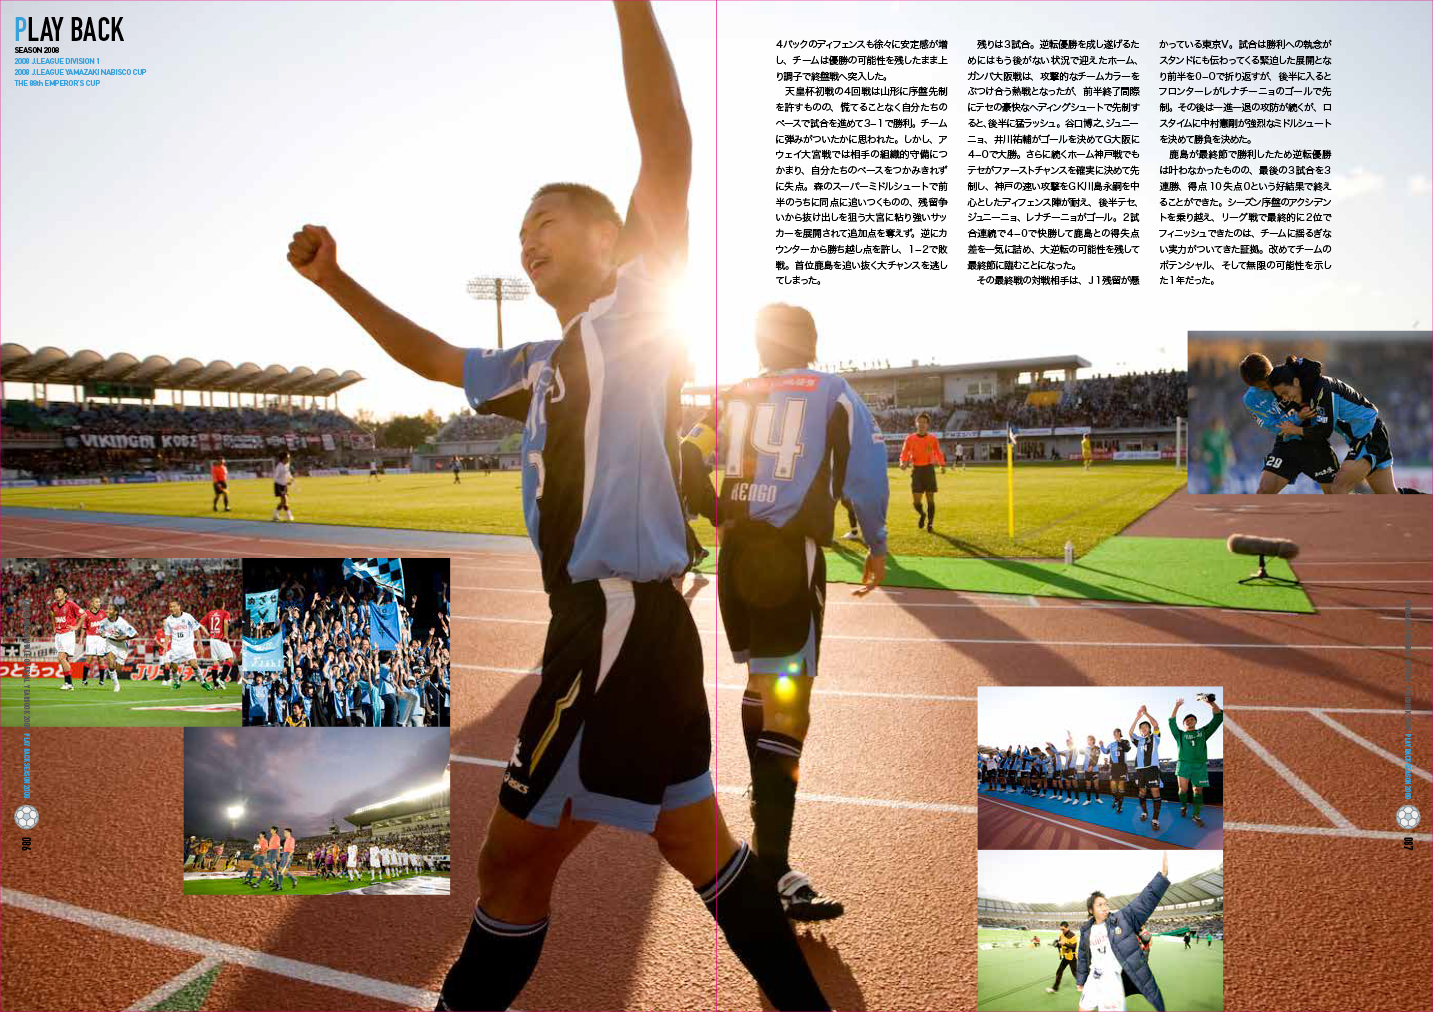 Kawasaki Frontale Year Book 2009